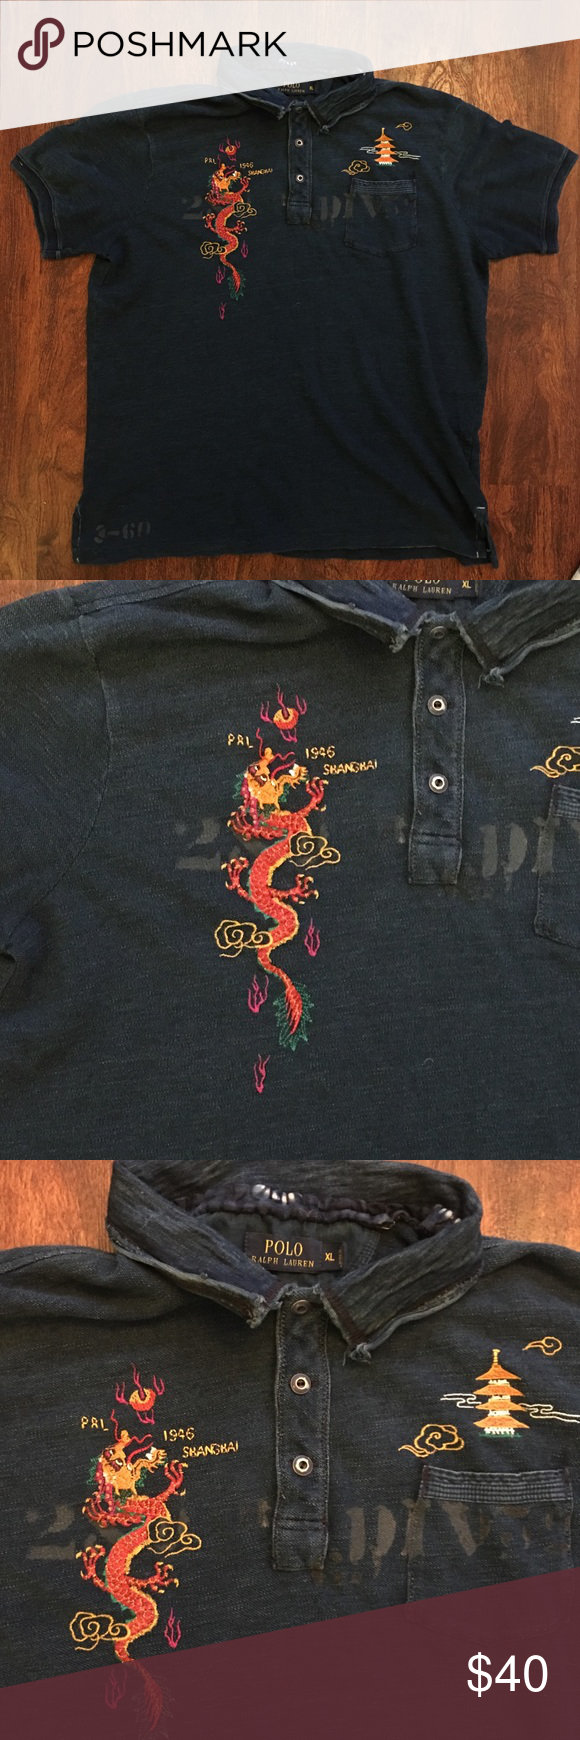 "Lauren Good Polo Condition Xl Shirt Ralph Sz Used ""1946 In Shanghai"" vmN80nOw"